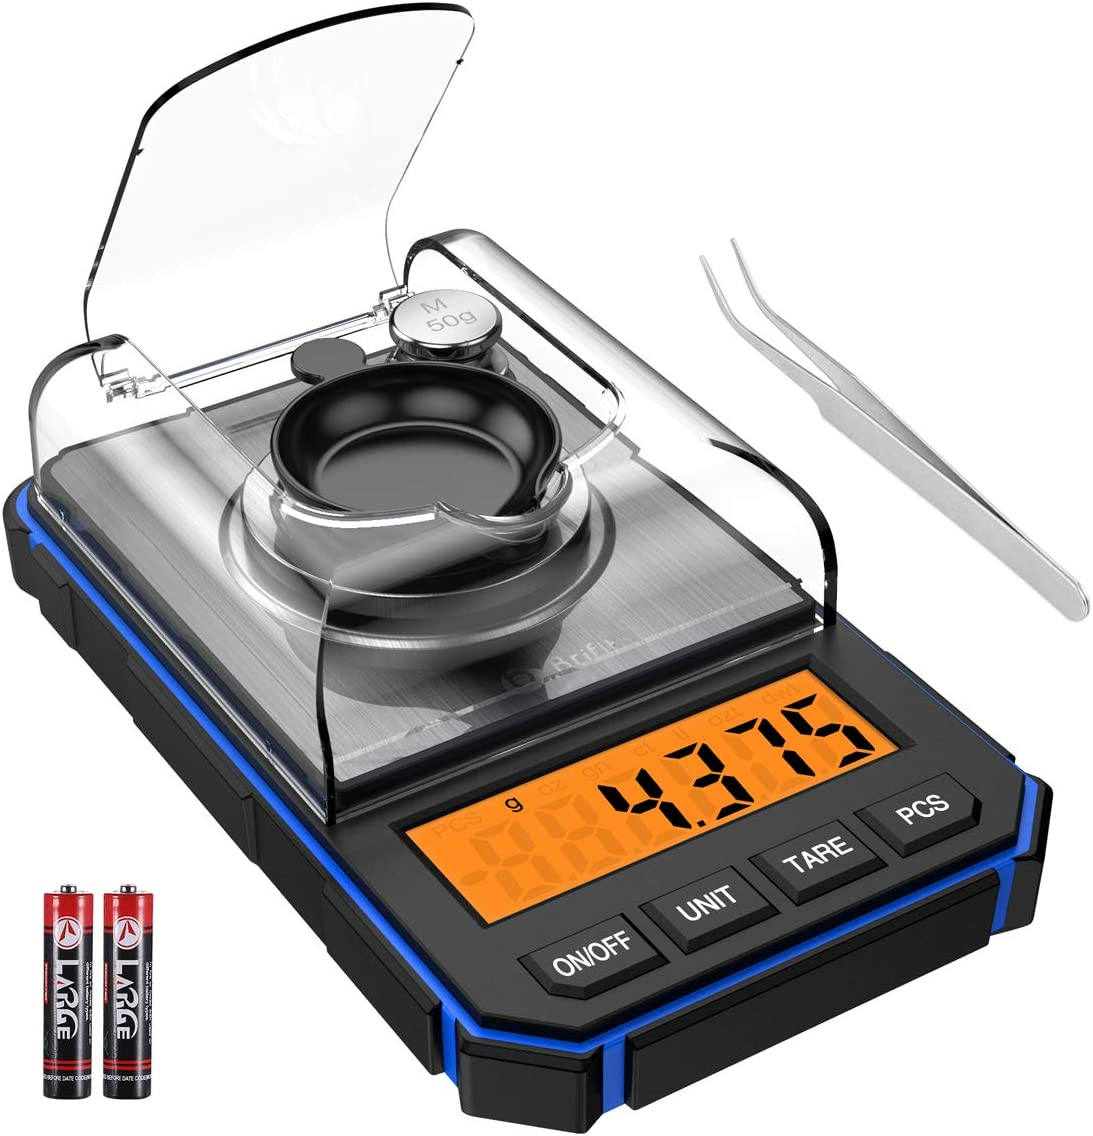 Brifit Digital Milligram Scale Batteries Included Professional Pocket Scale with 50g Calibration Weights Tweezers 50g Portable Mini Scale 0.001g Precise Graduation